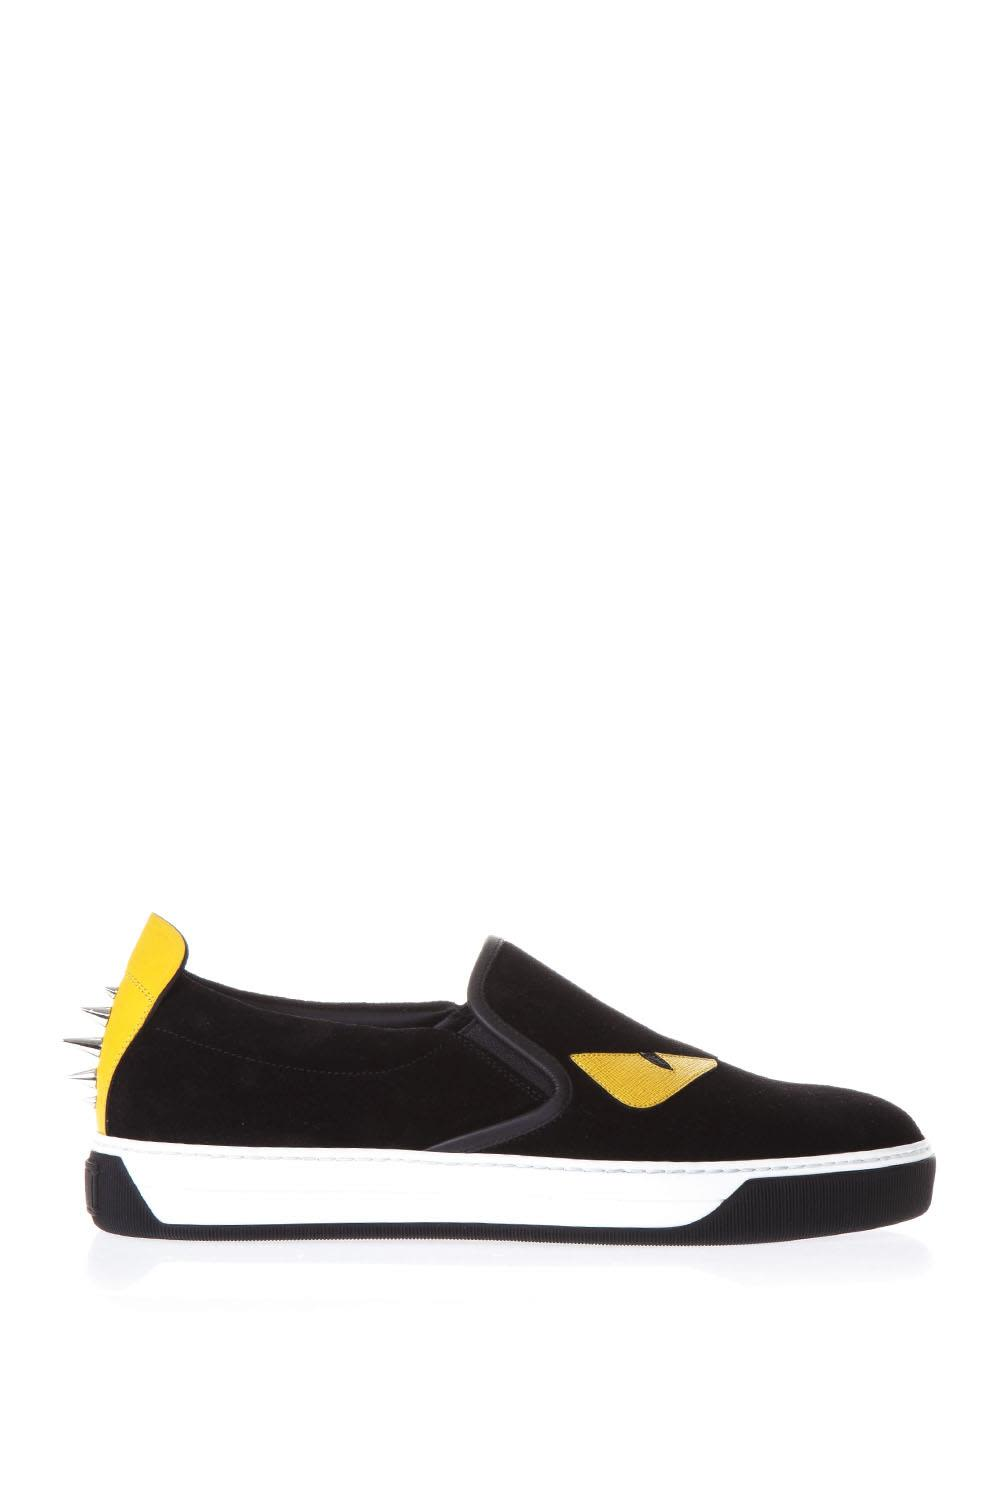 Fendi Bag Bugs Black Suede Slip-on Sneakers